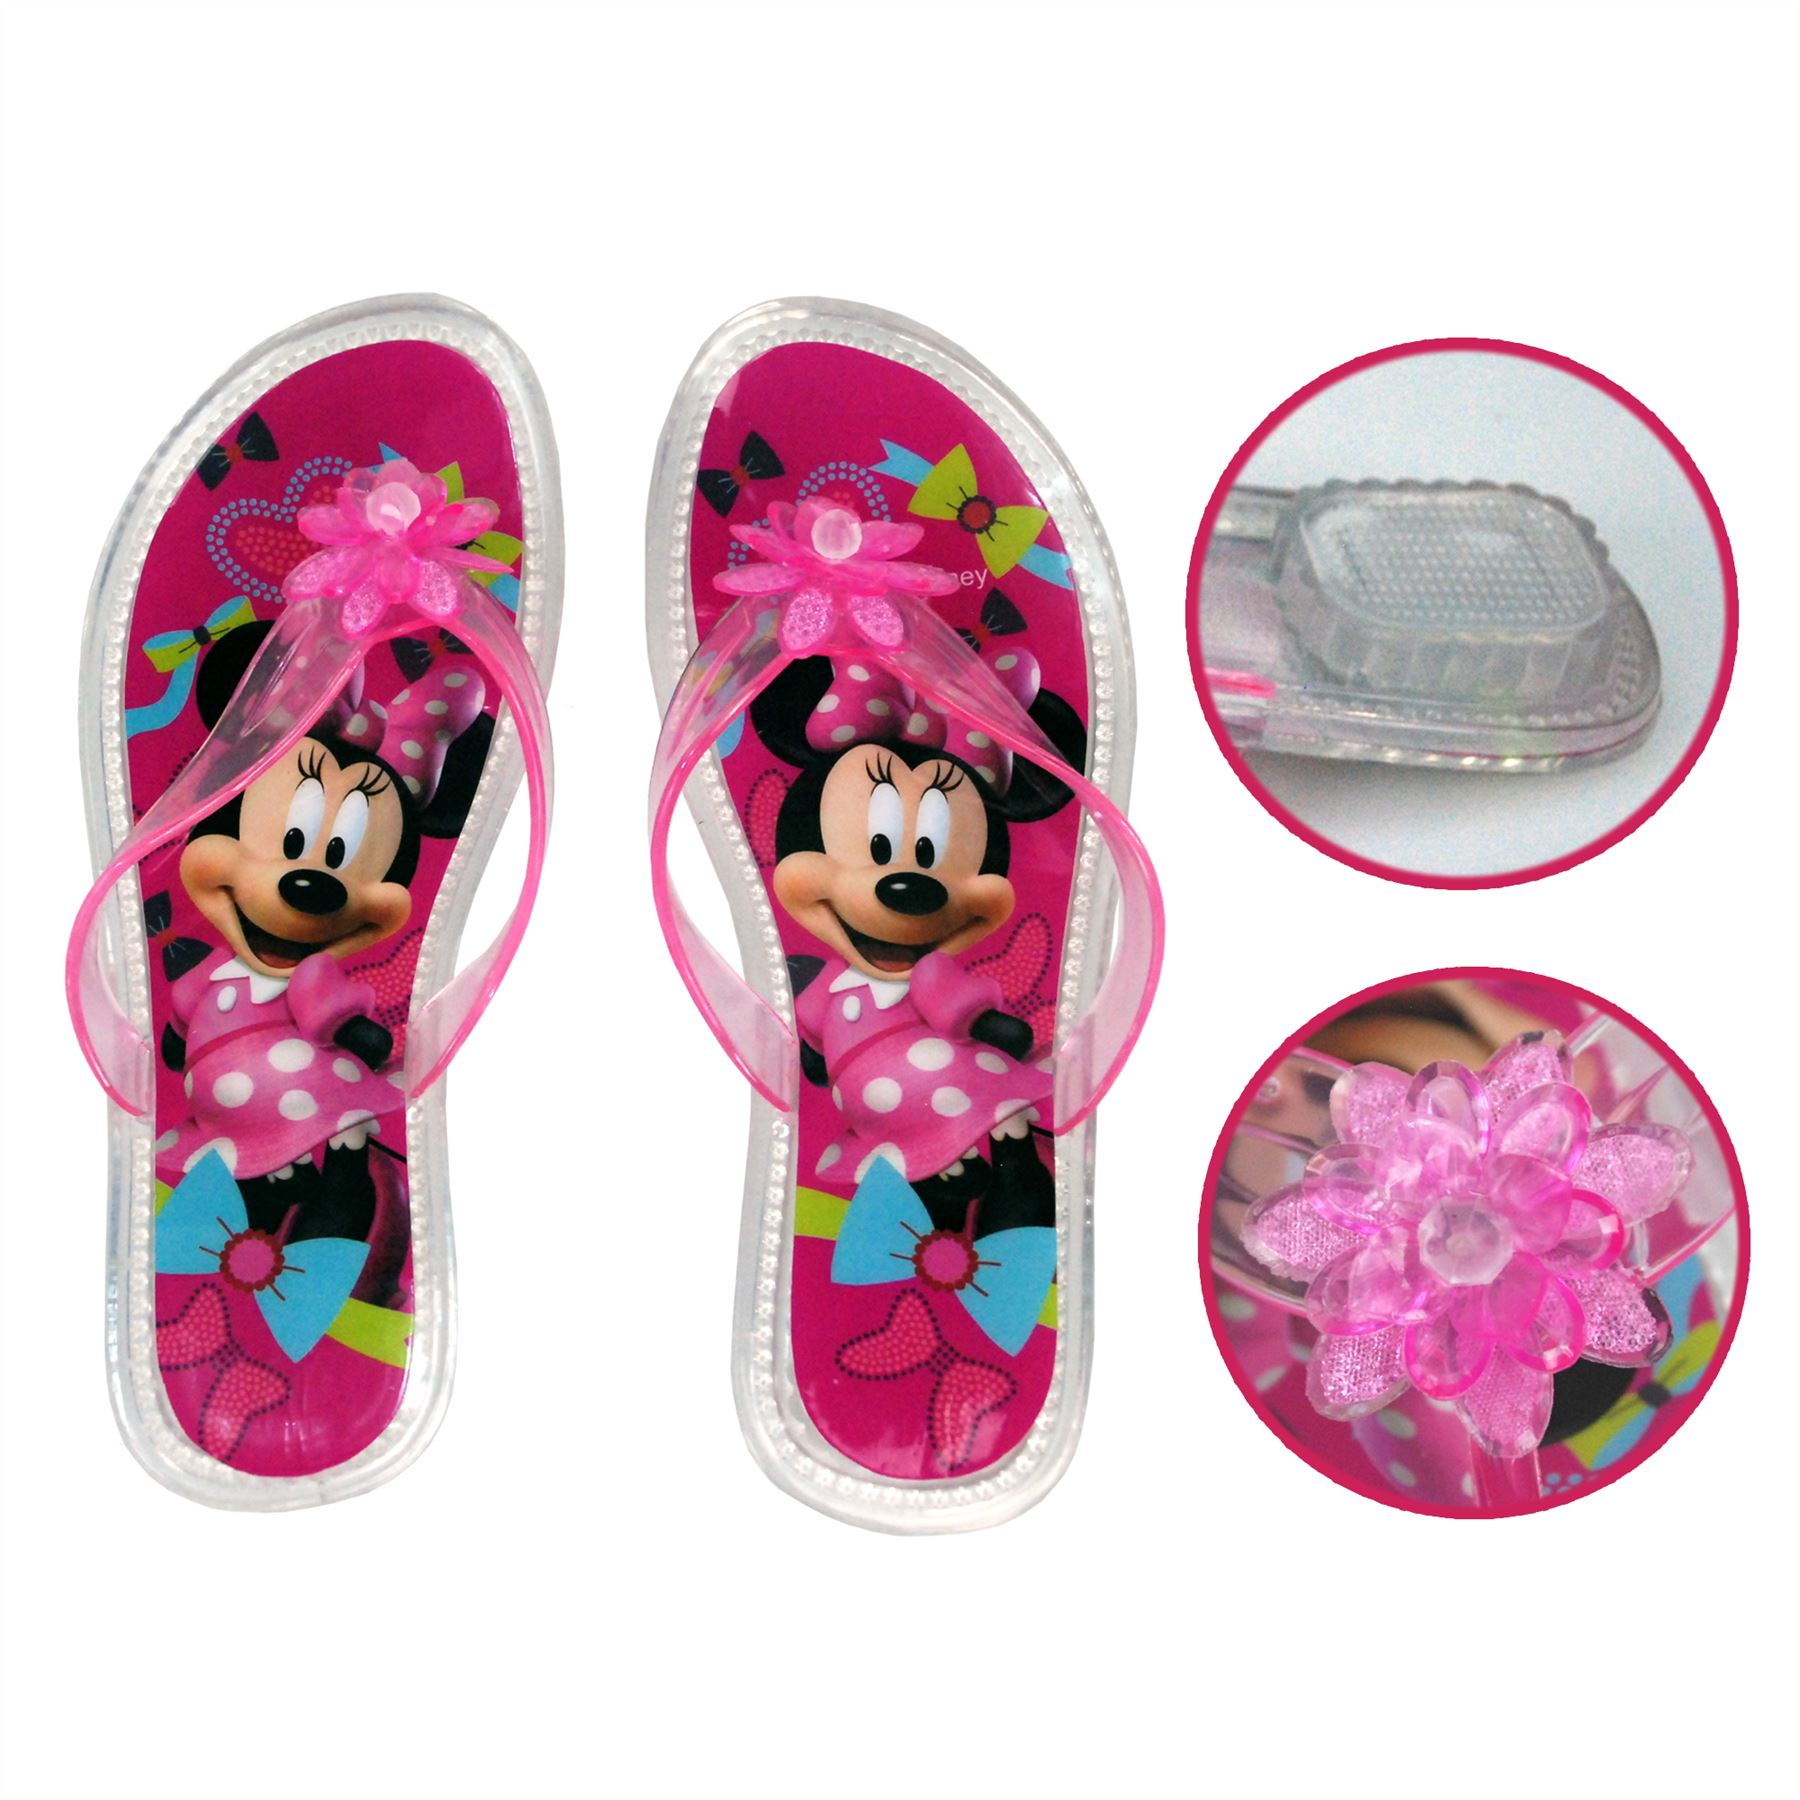 78cfa0a45dad55 Disney® Minnie Mouse Girls Flip Flop Jelly Sandal Heel UK Sizes 5 ...